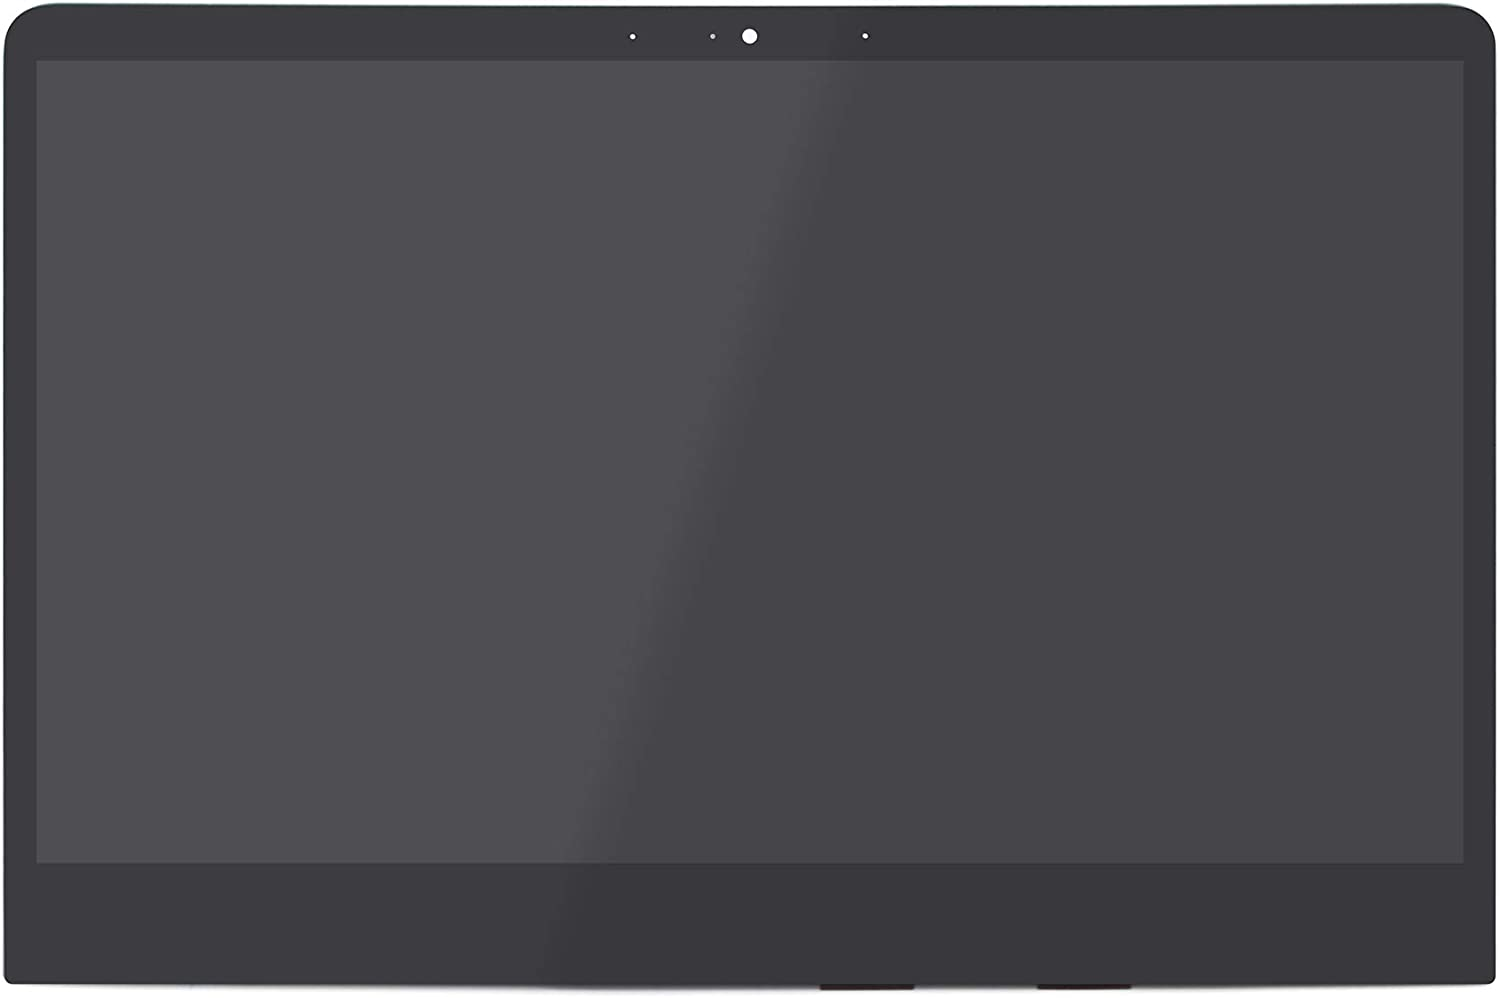 LCDOLED Replacement 14.0 inches FullHD 1920x1080 IPS LED LCD Display Touch Screen Digitizer Assembly for ASUS Q405 Q405U Q405UA Series Q405UA-BI5T10 Q405UA-BI5T5 Q405UA-BI5T7 (No Bezel)